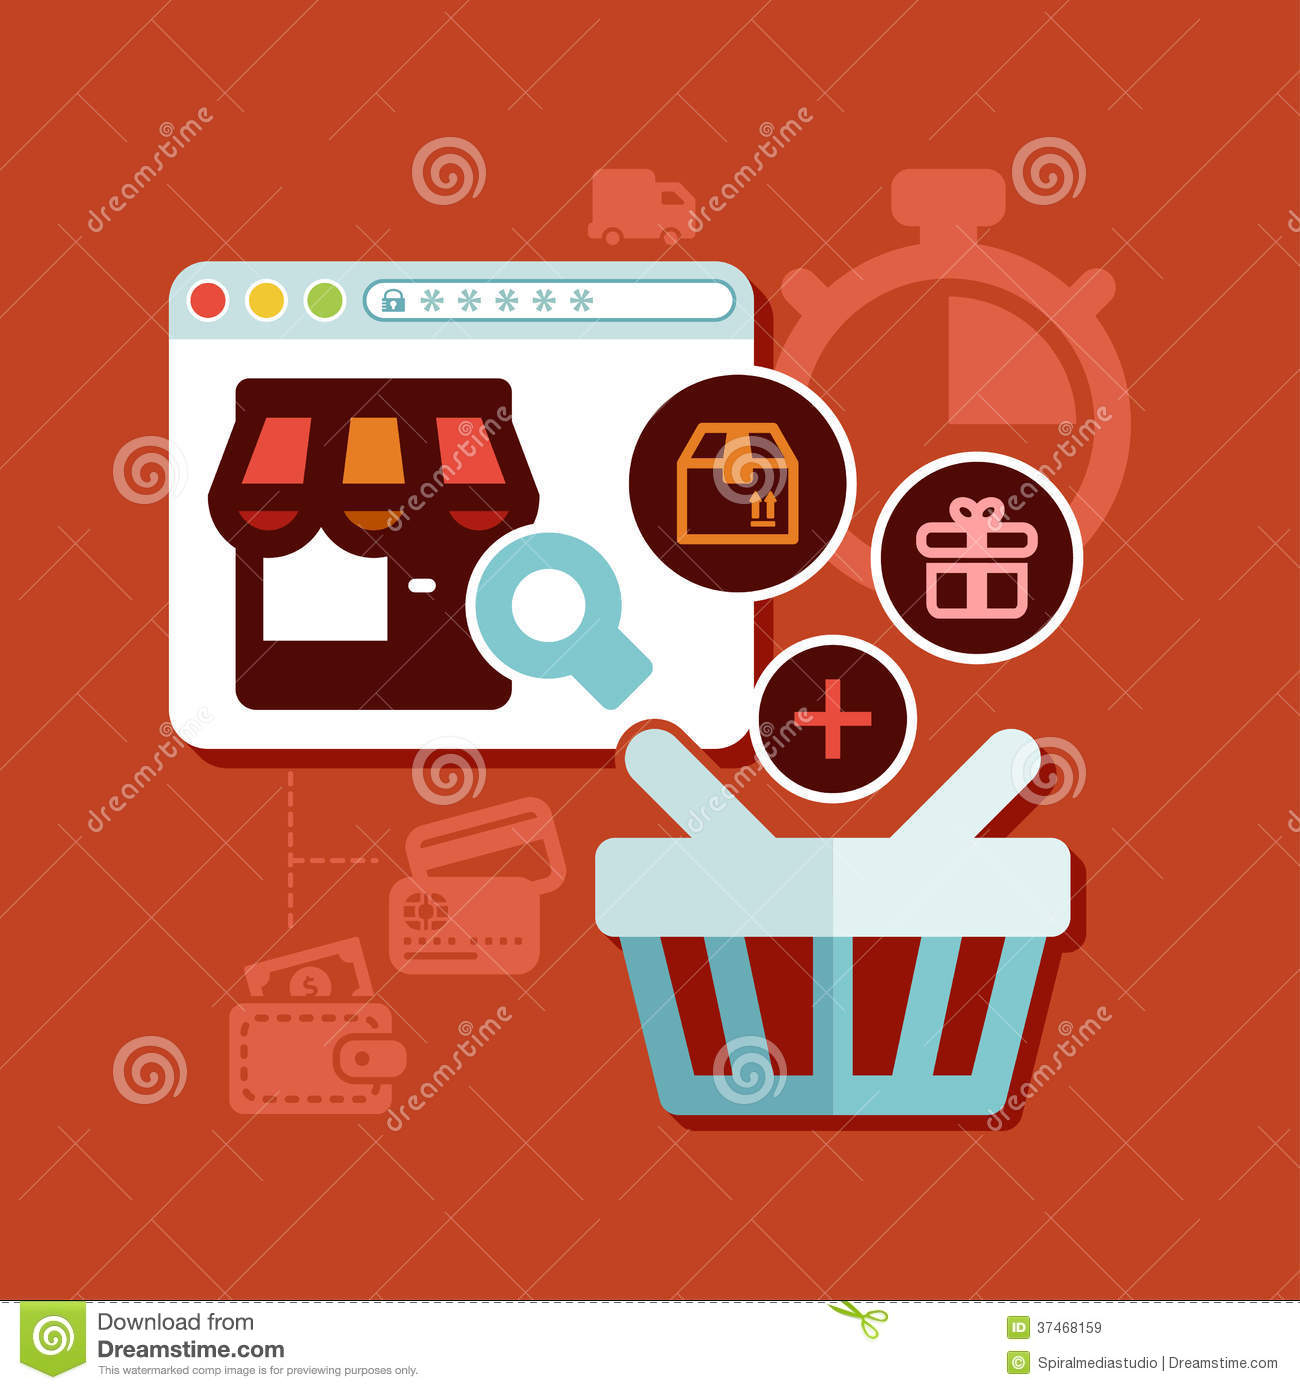 Shopping Online Royalty Free Stock Images Image 37468159